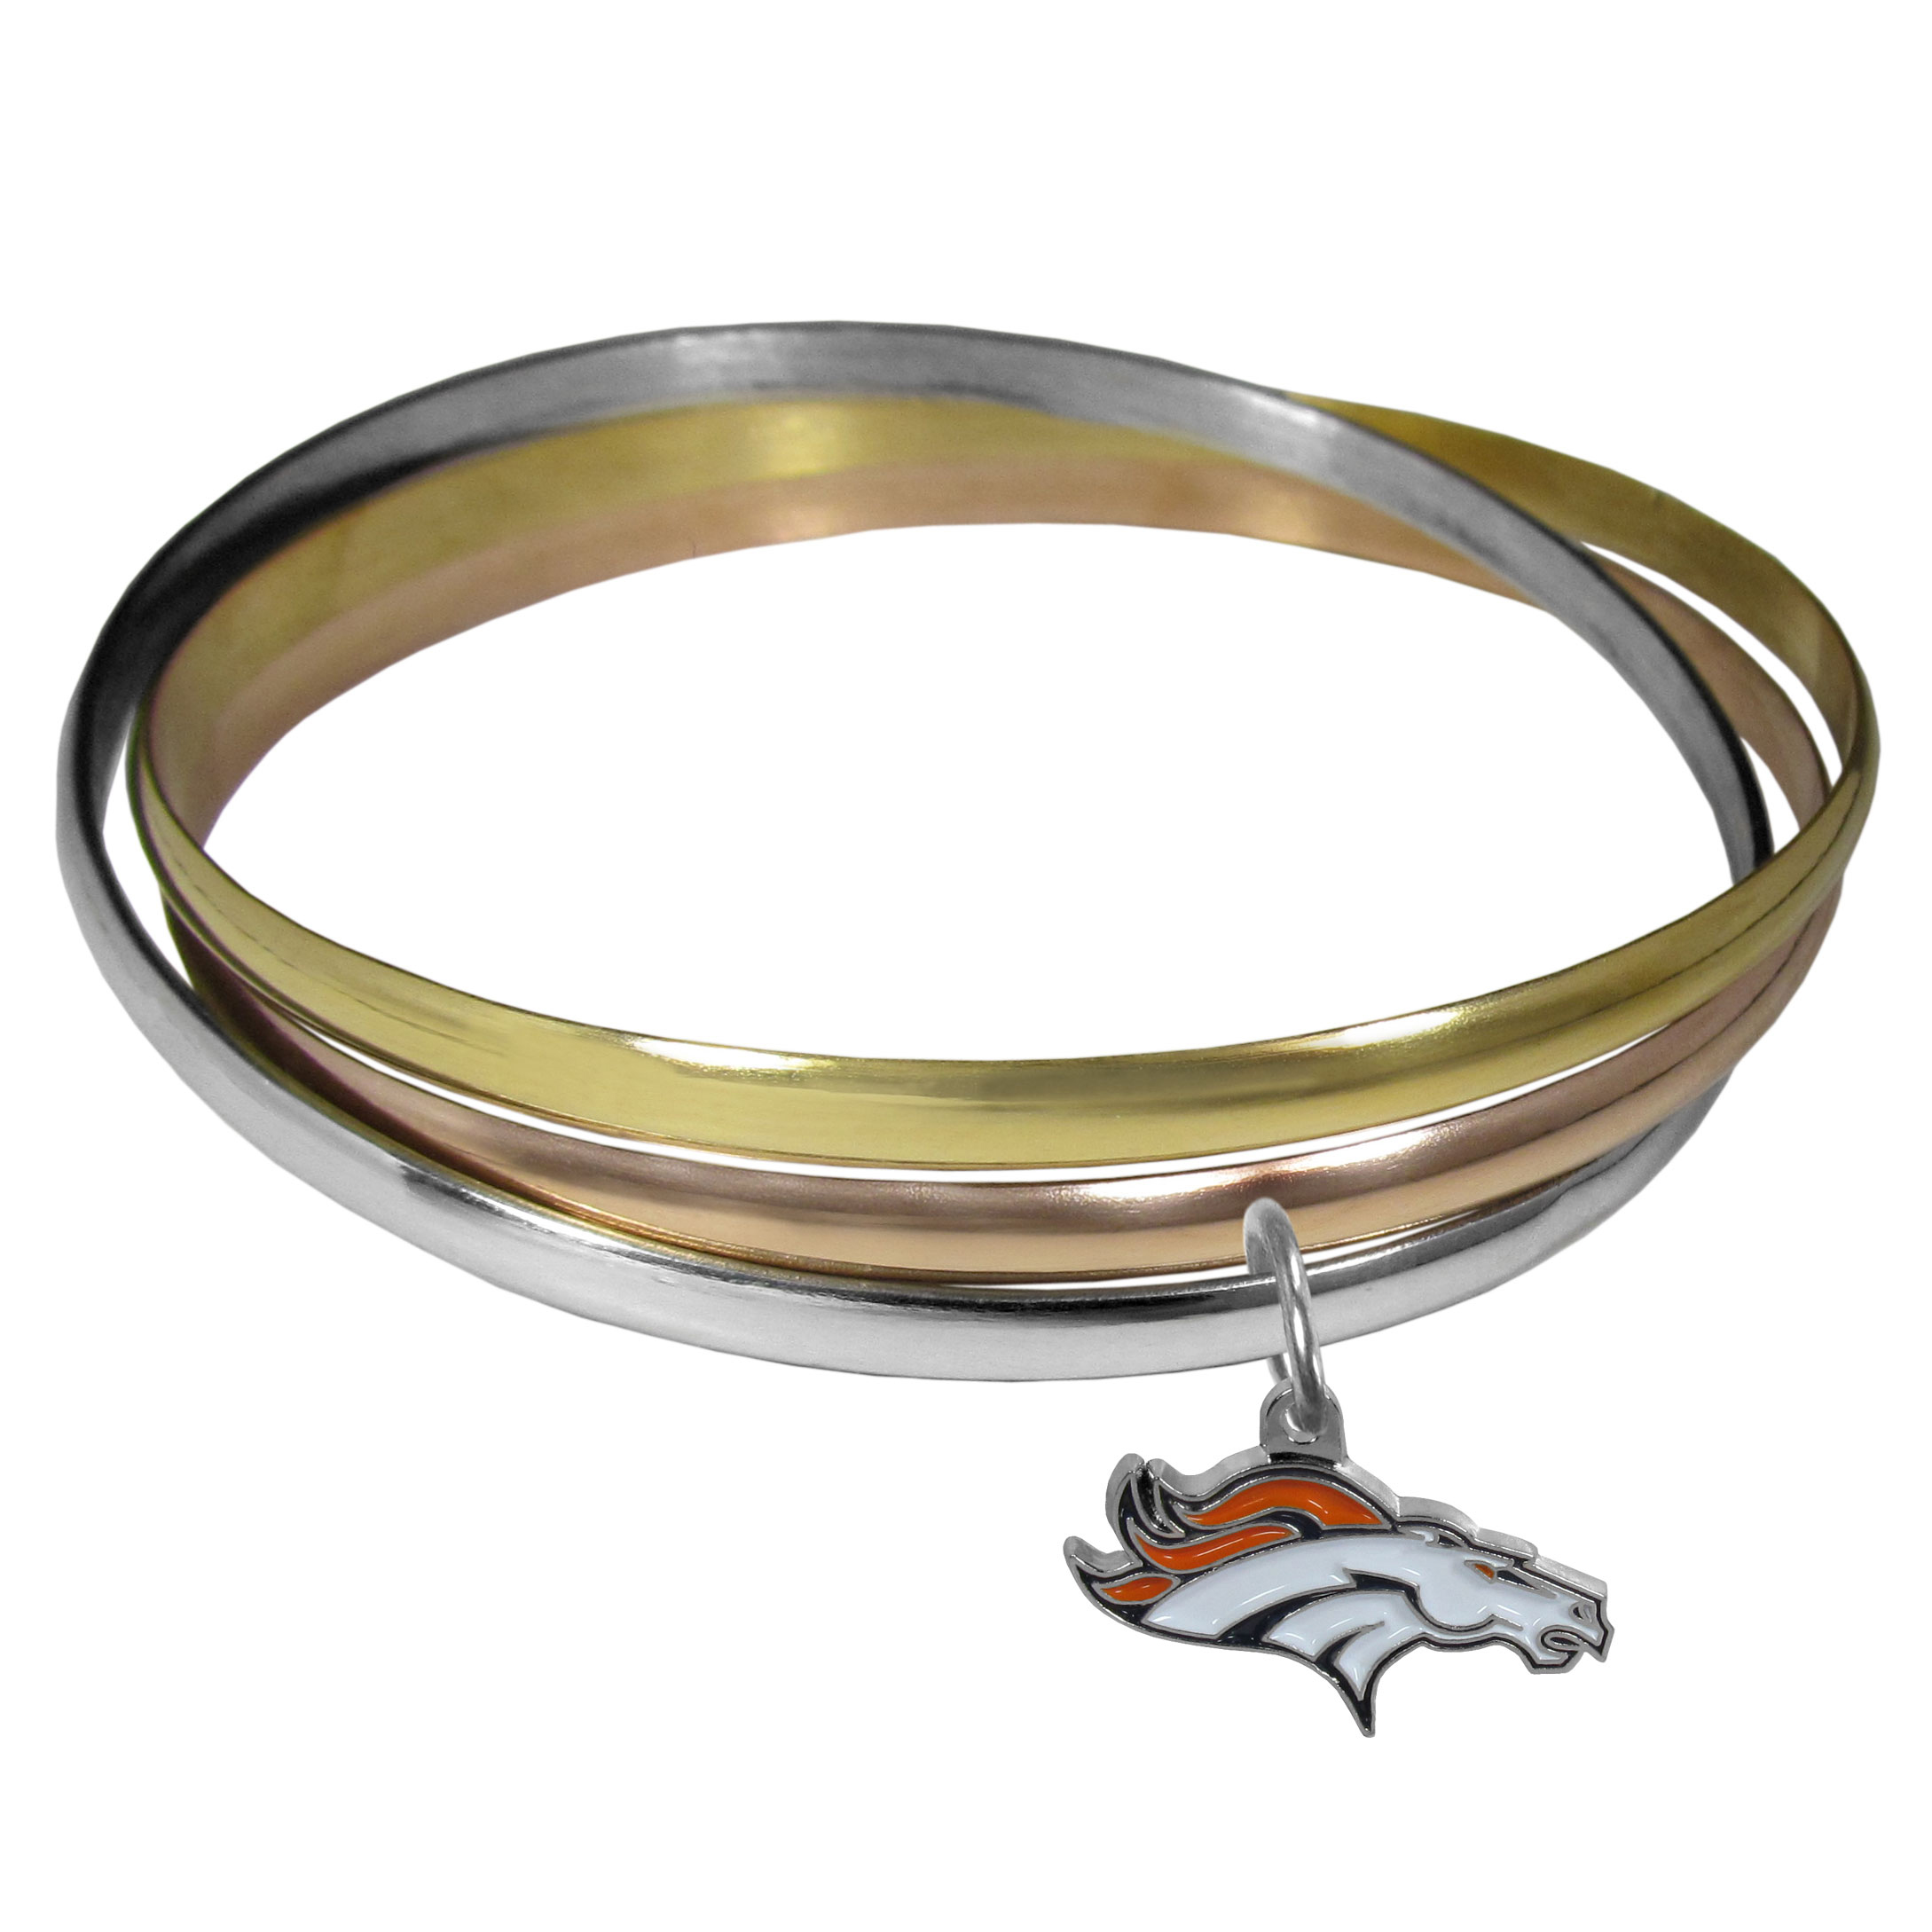 Denver Broncos Tri-color Bangle Bracelet - These beautiful bangles come in a interlocking style and feature a fully cast Denver Broncos charm with enameled team colors. The bracelet has a silver toned bangle, gold tone bangle and brass toned bangle.